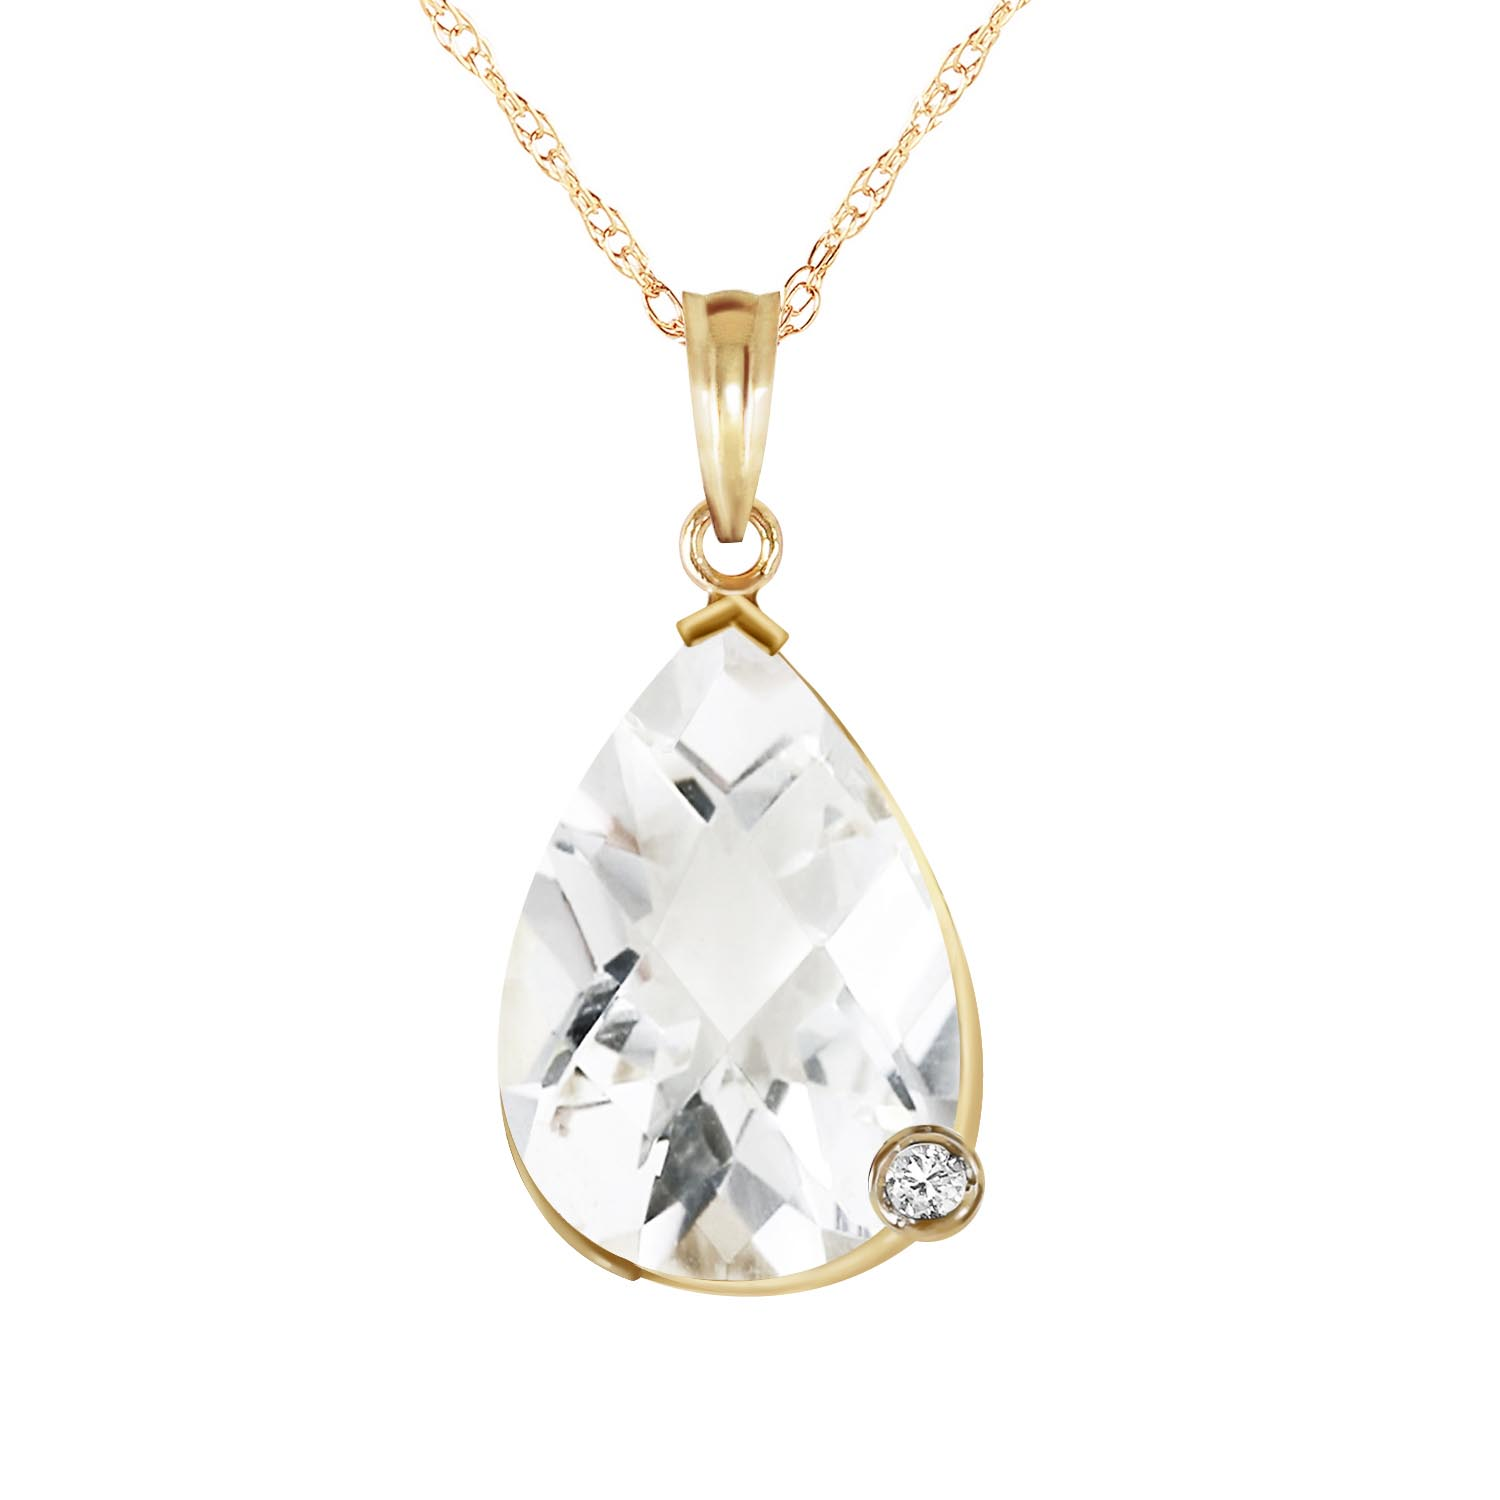 White Topaz and Diamond Chequer Pendant Necklace 5.0ct in 9ct Gold